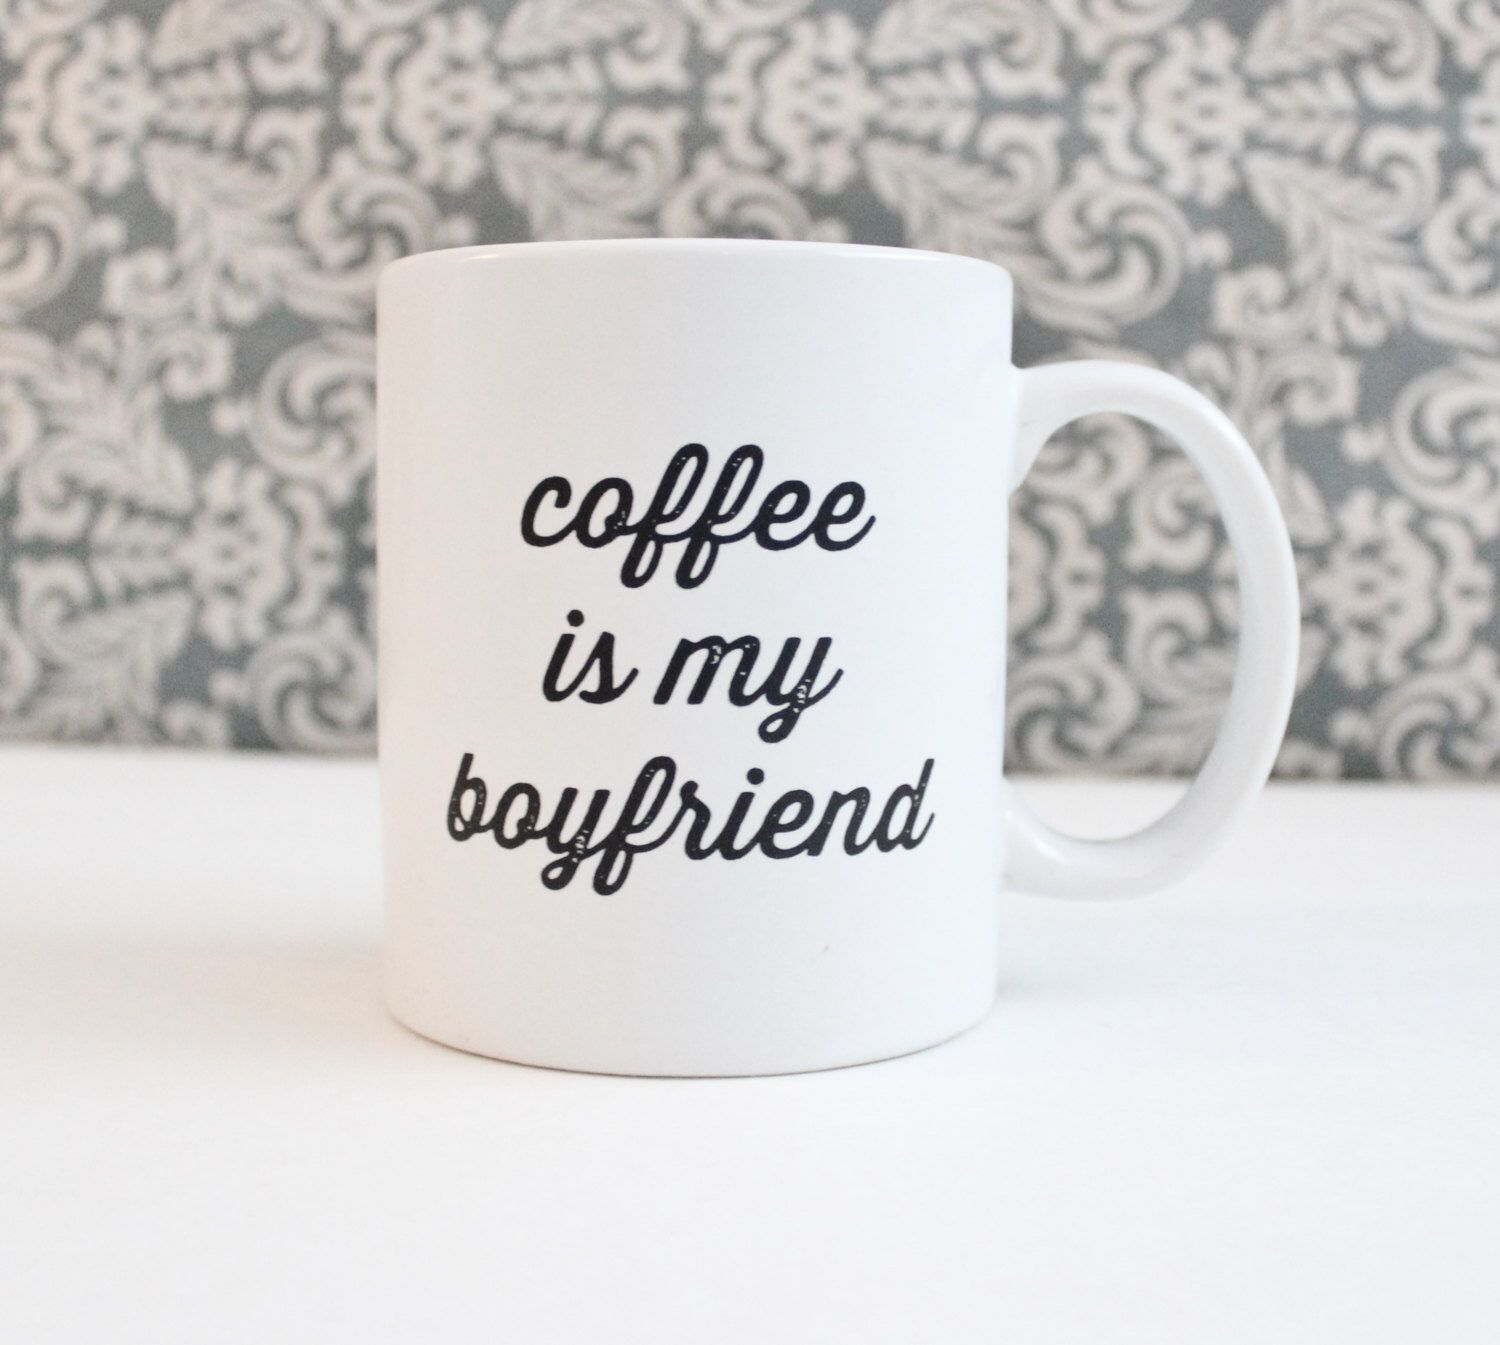 Cup Of Coffee For Your Head Lyrics Clean